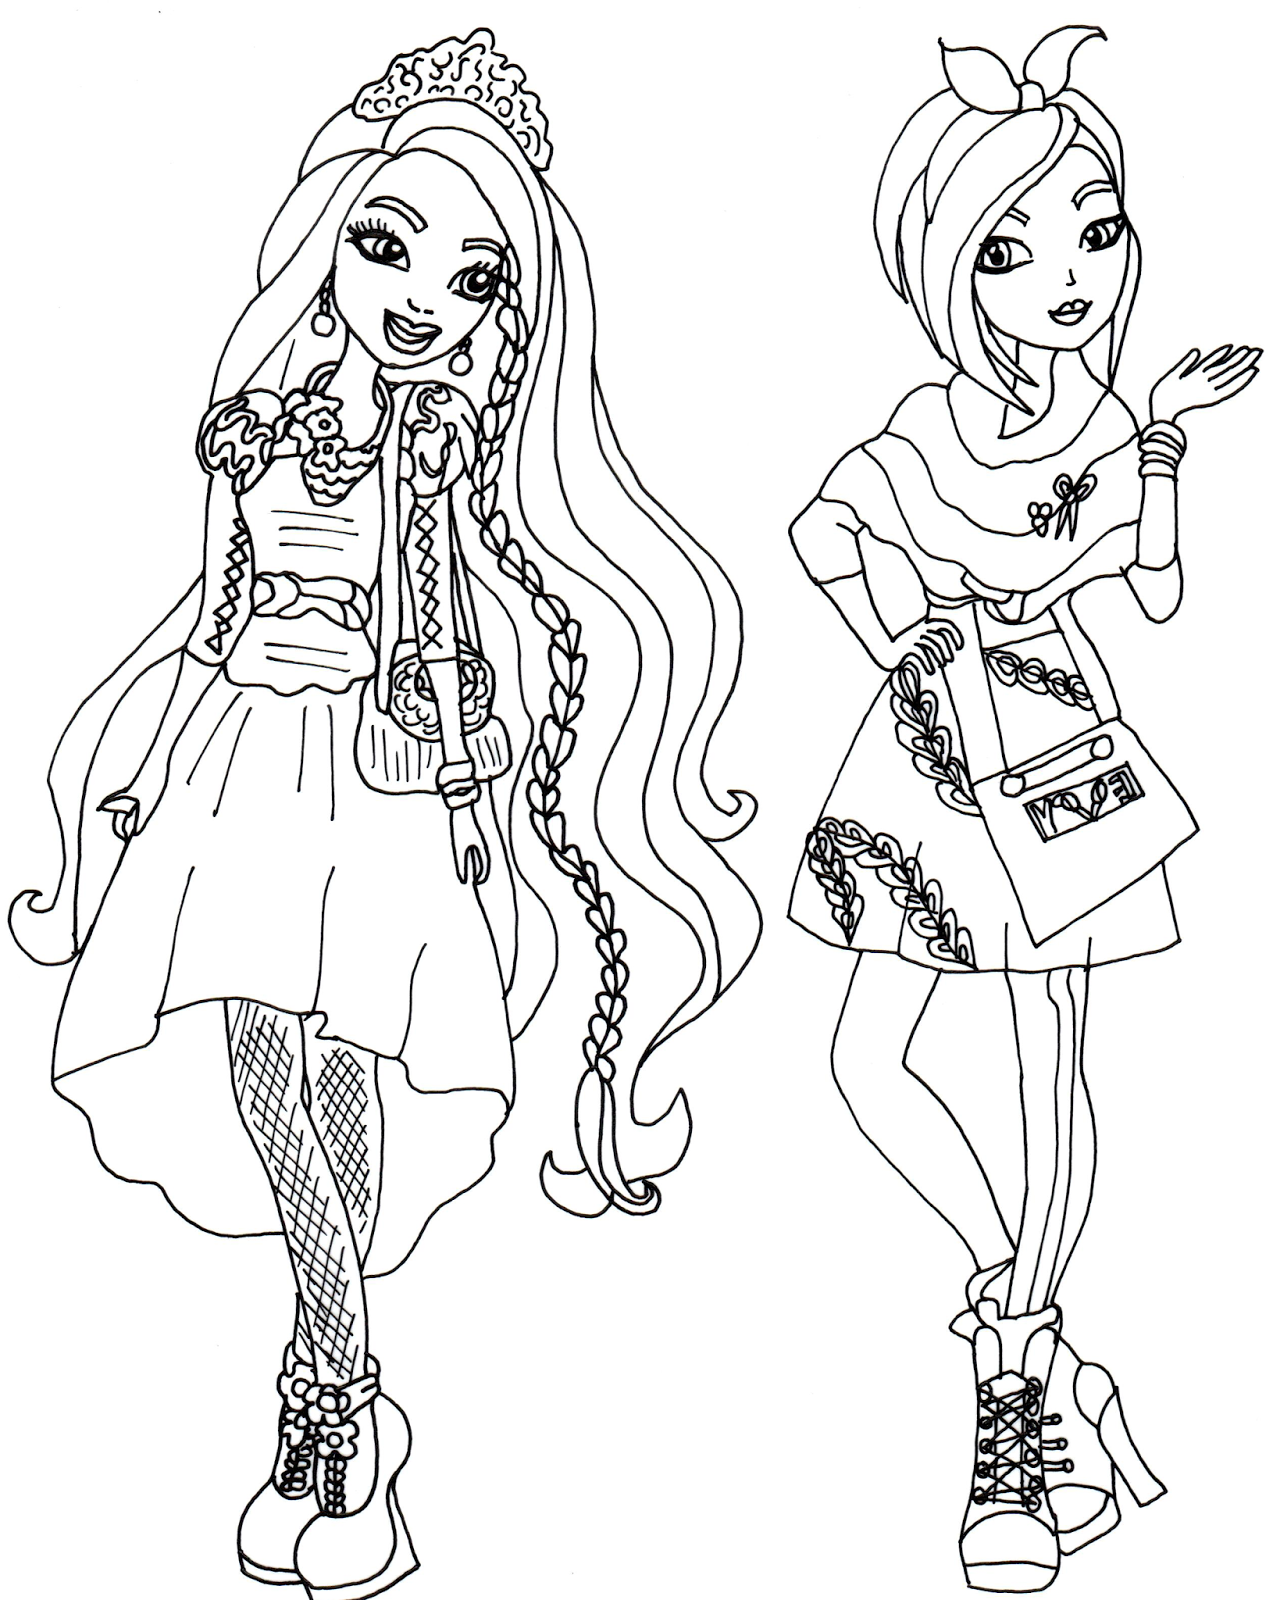 Holly And Poppy O 27hair Ever After High Coloring Page Png 1273